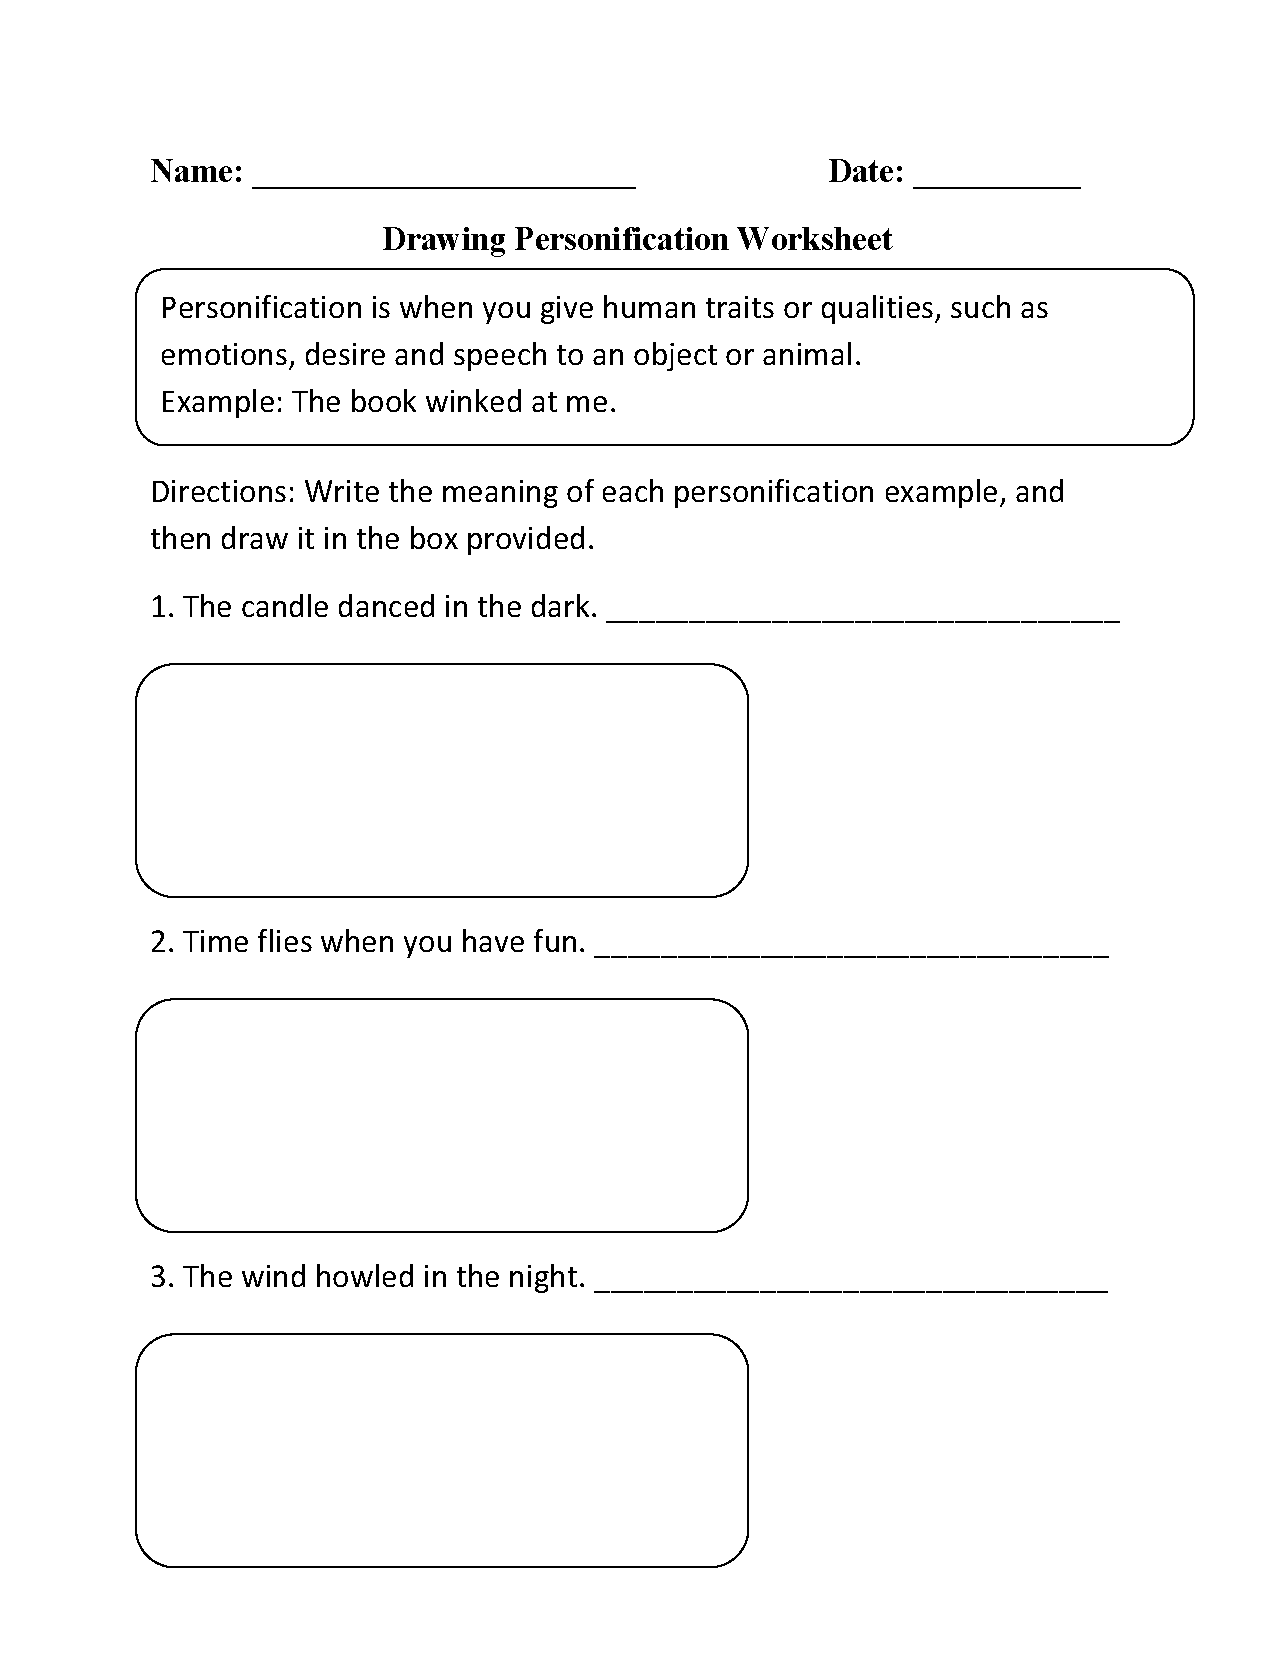 Drawing Personifcation Worksheet